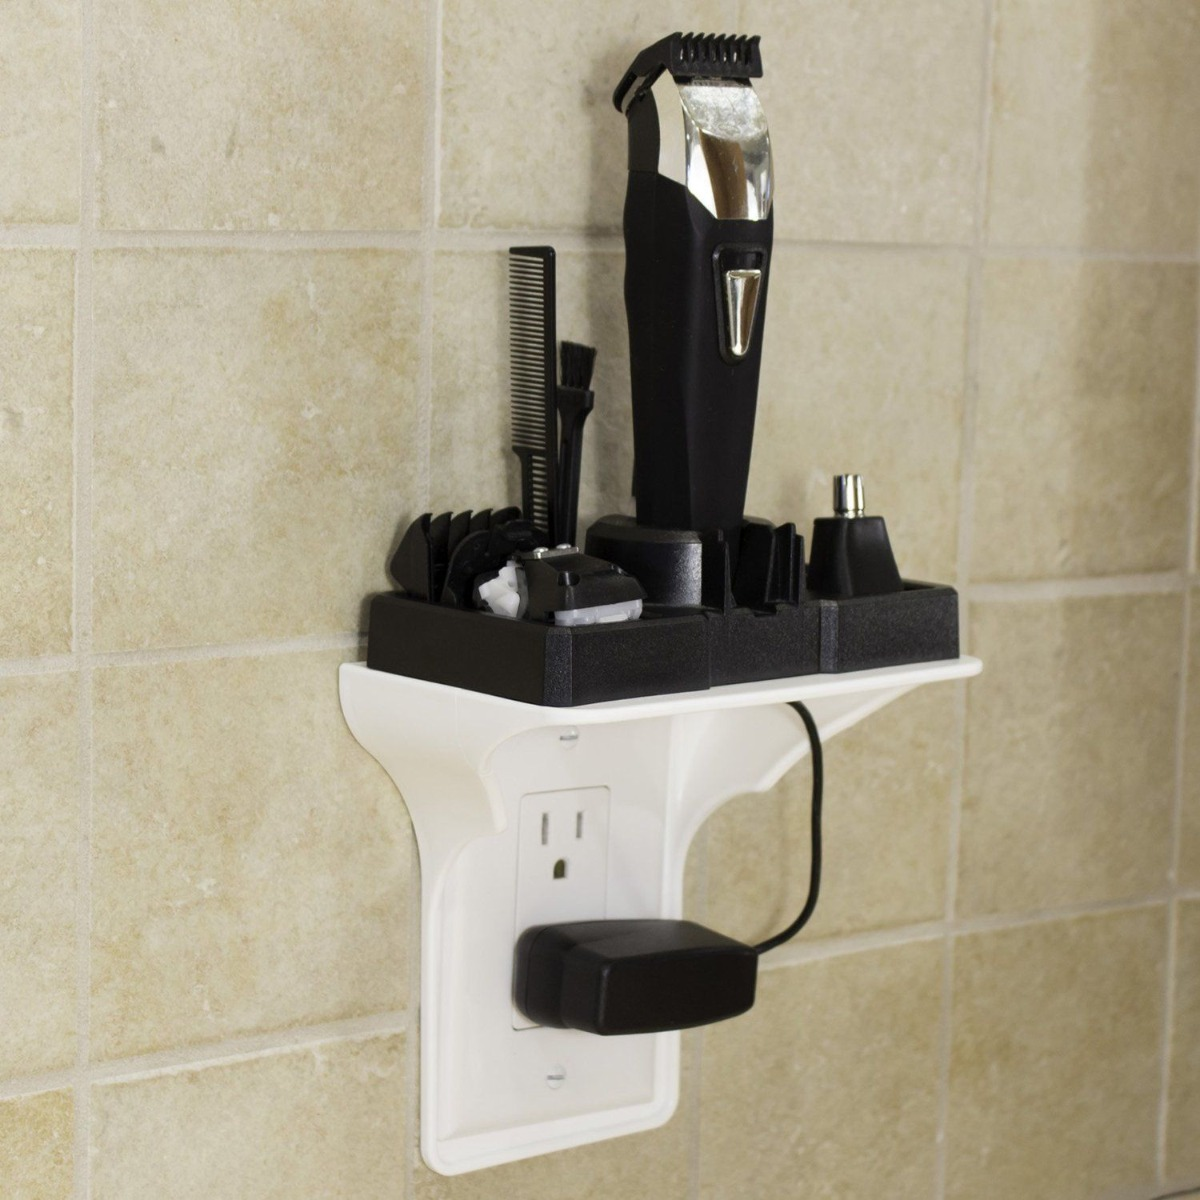 Wall Outlet Organizer